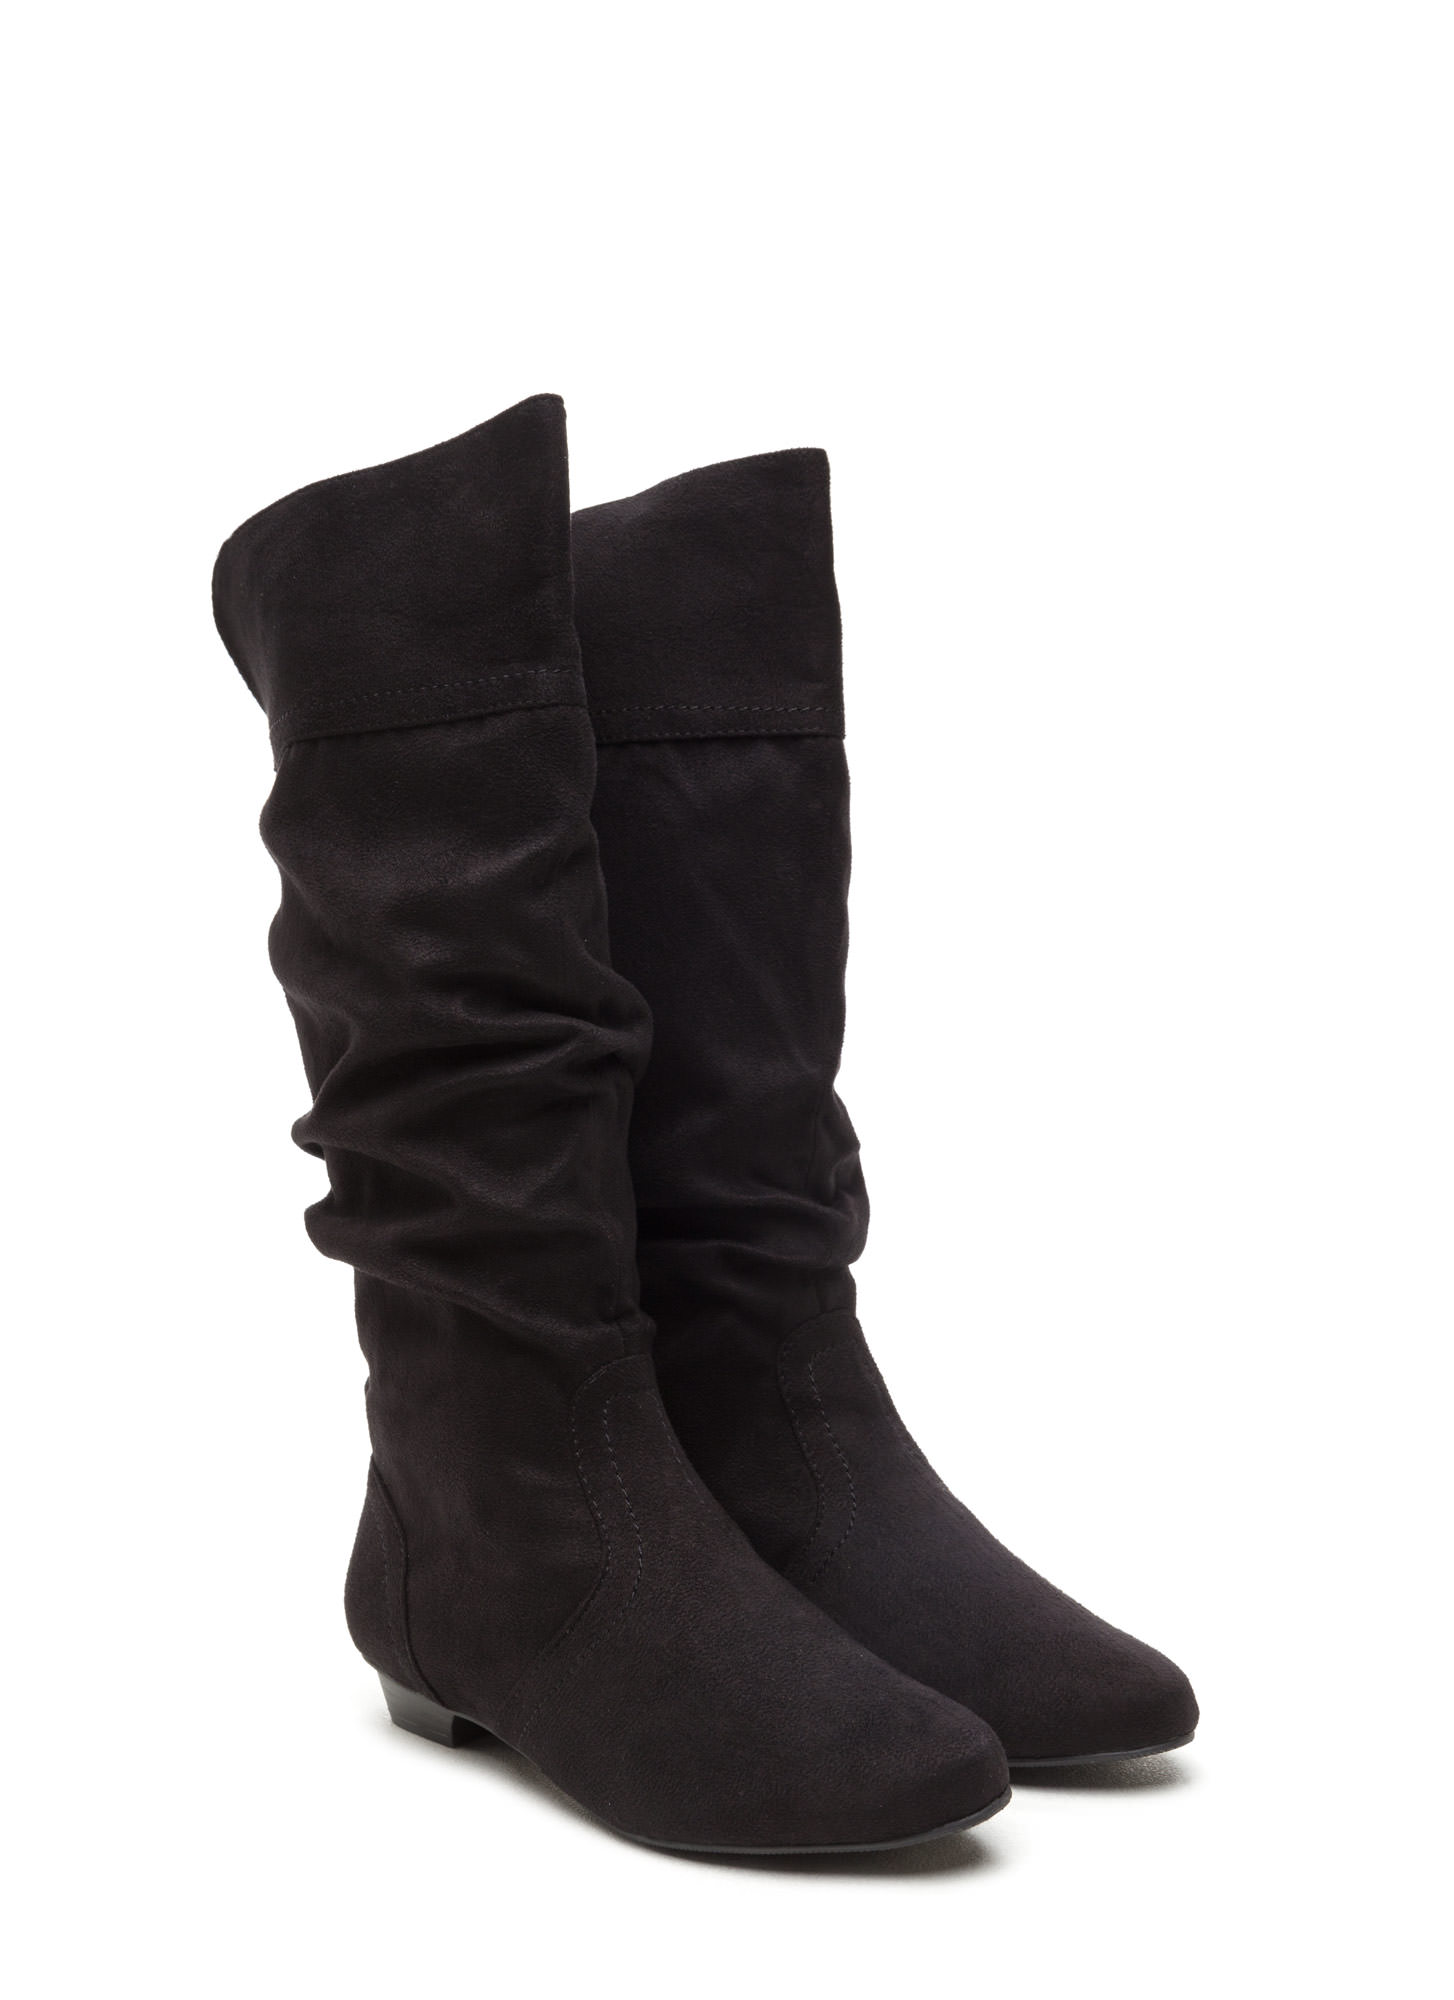 Ditch Day Faux Suede Boots BLACK